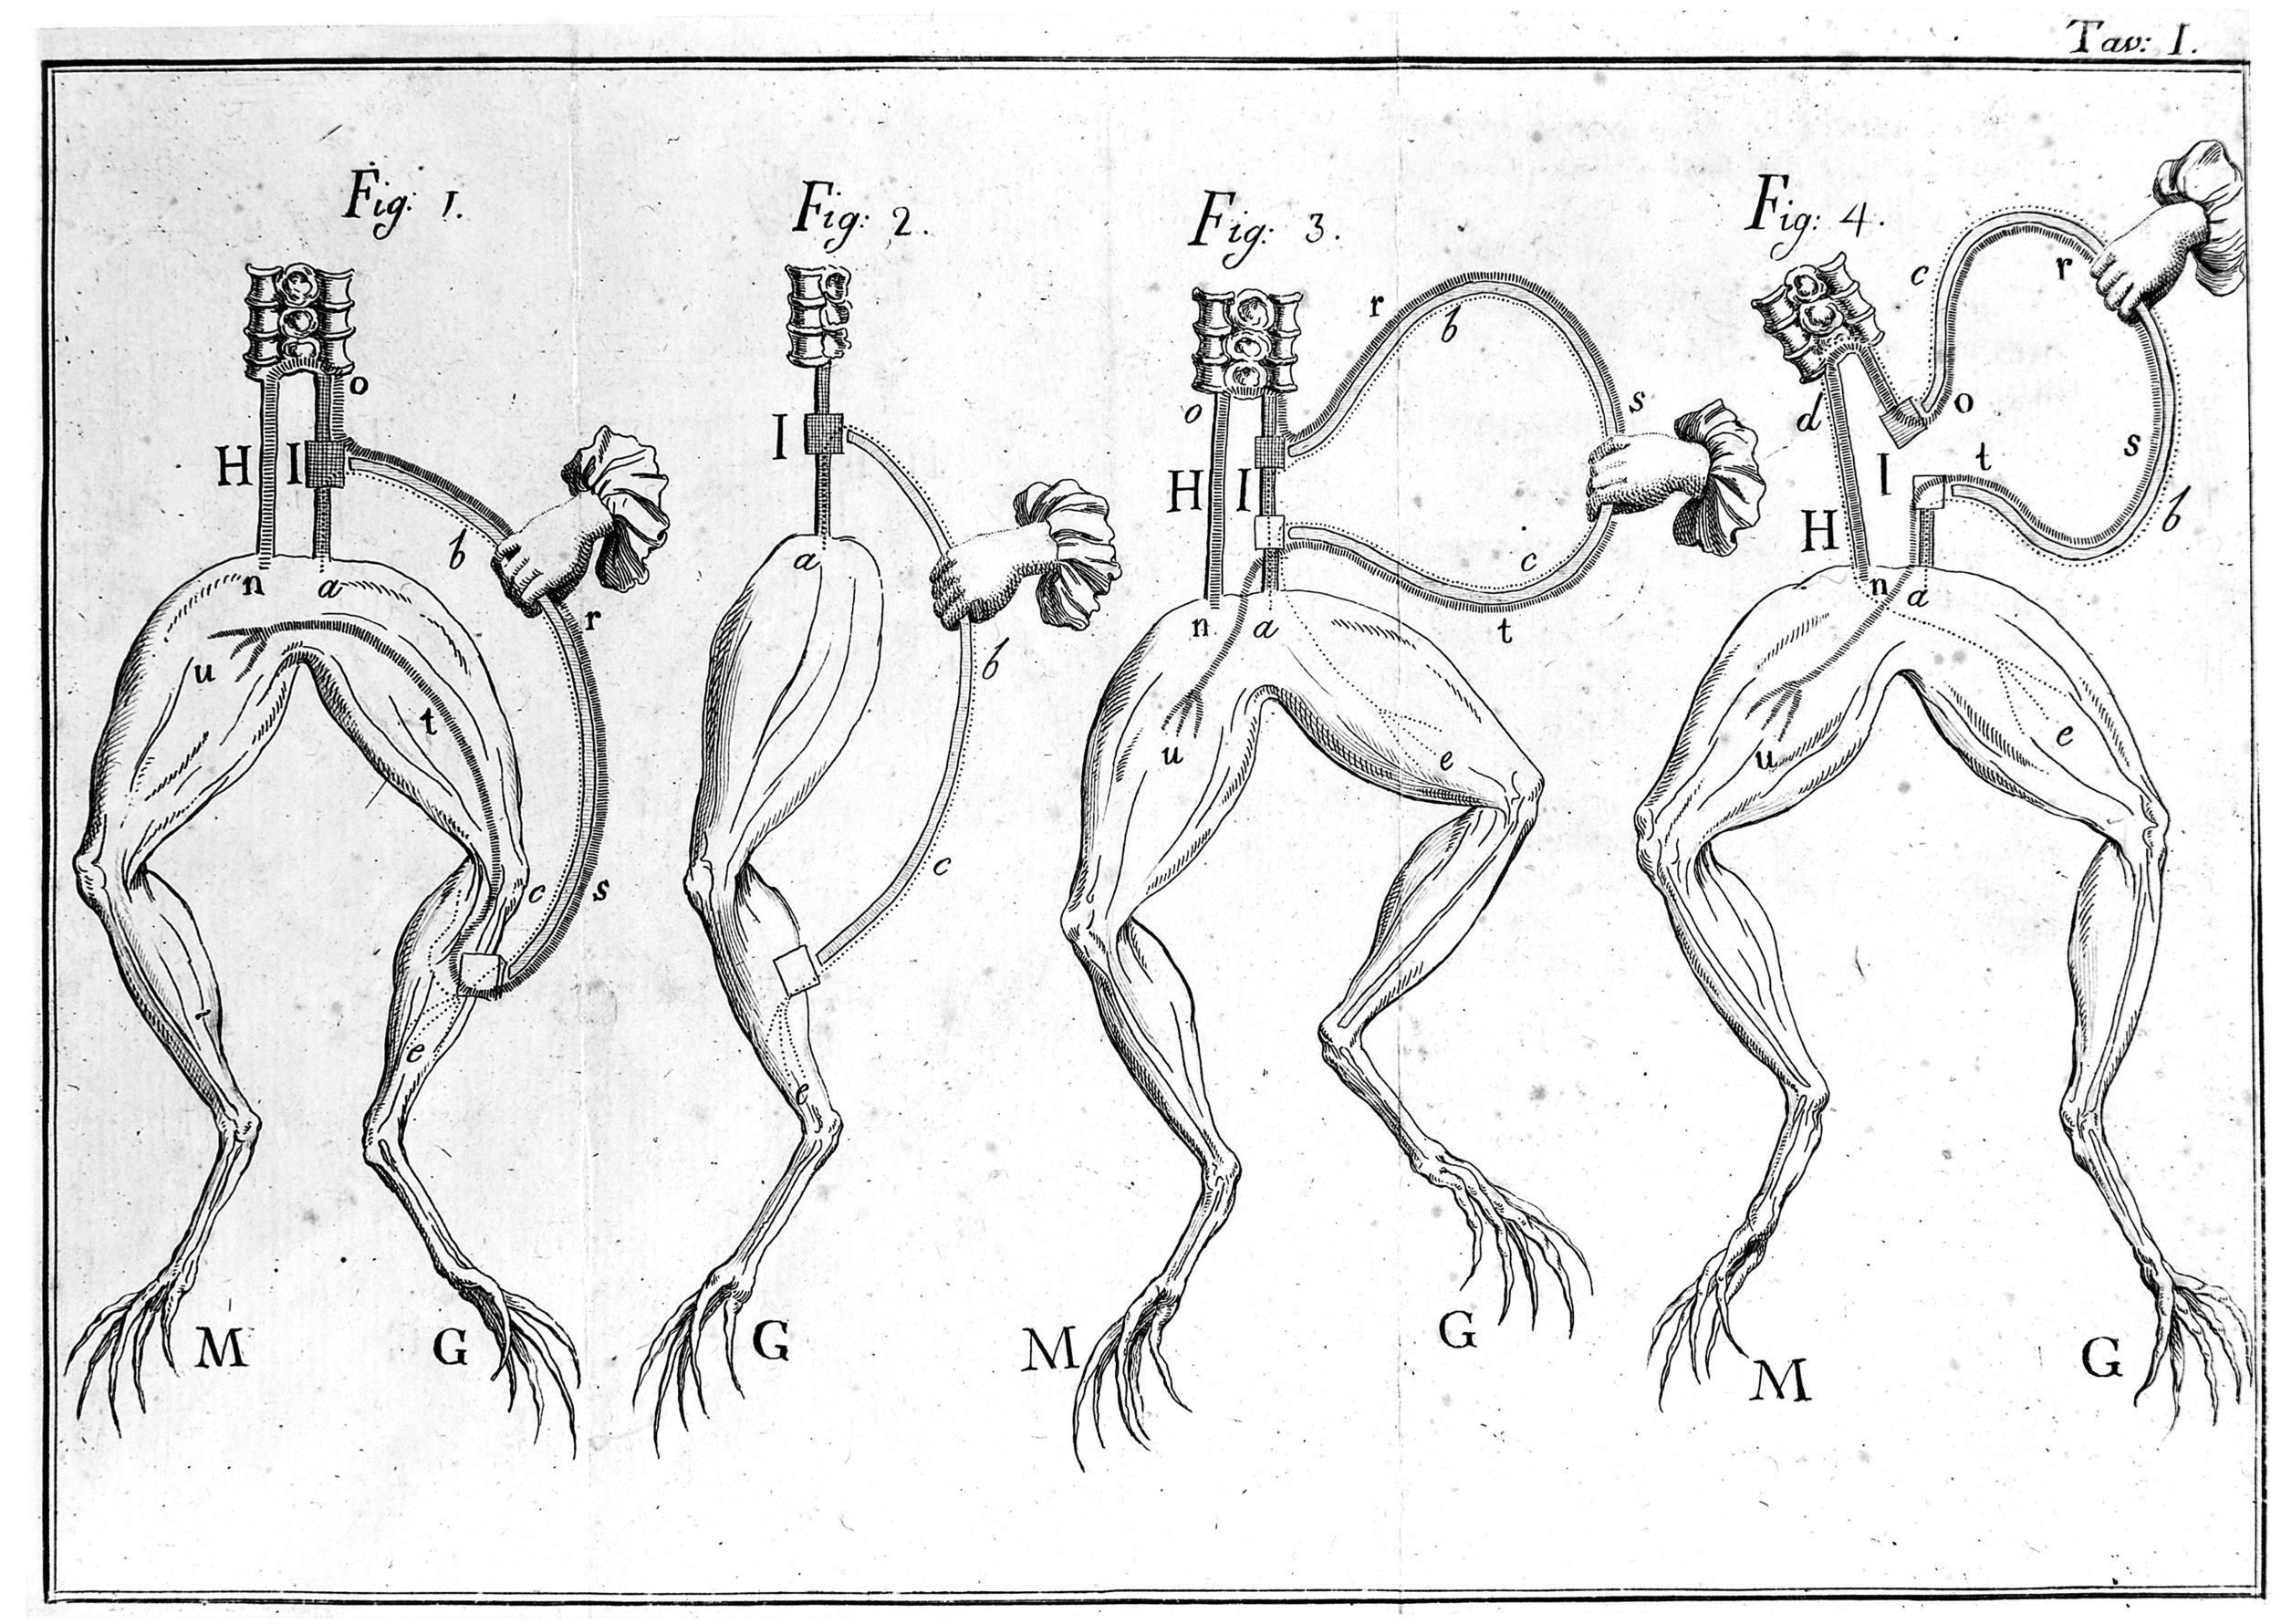 1793 diagram illustrating the sciatic nerve experiment Galvani performed in frogs.  Wellcome Images/Wikimedia Commons  (CC BY 4.0)